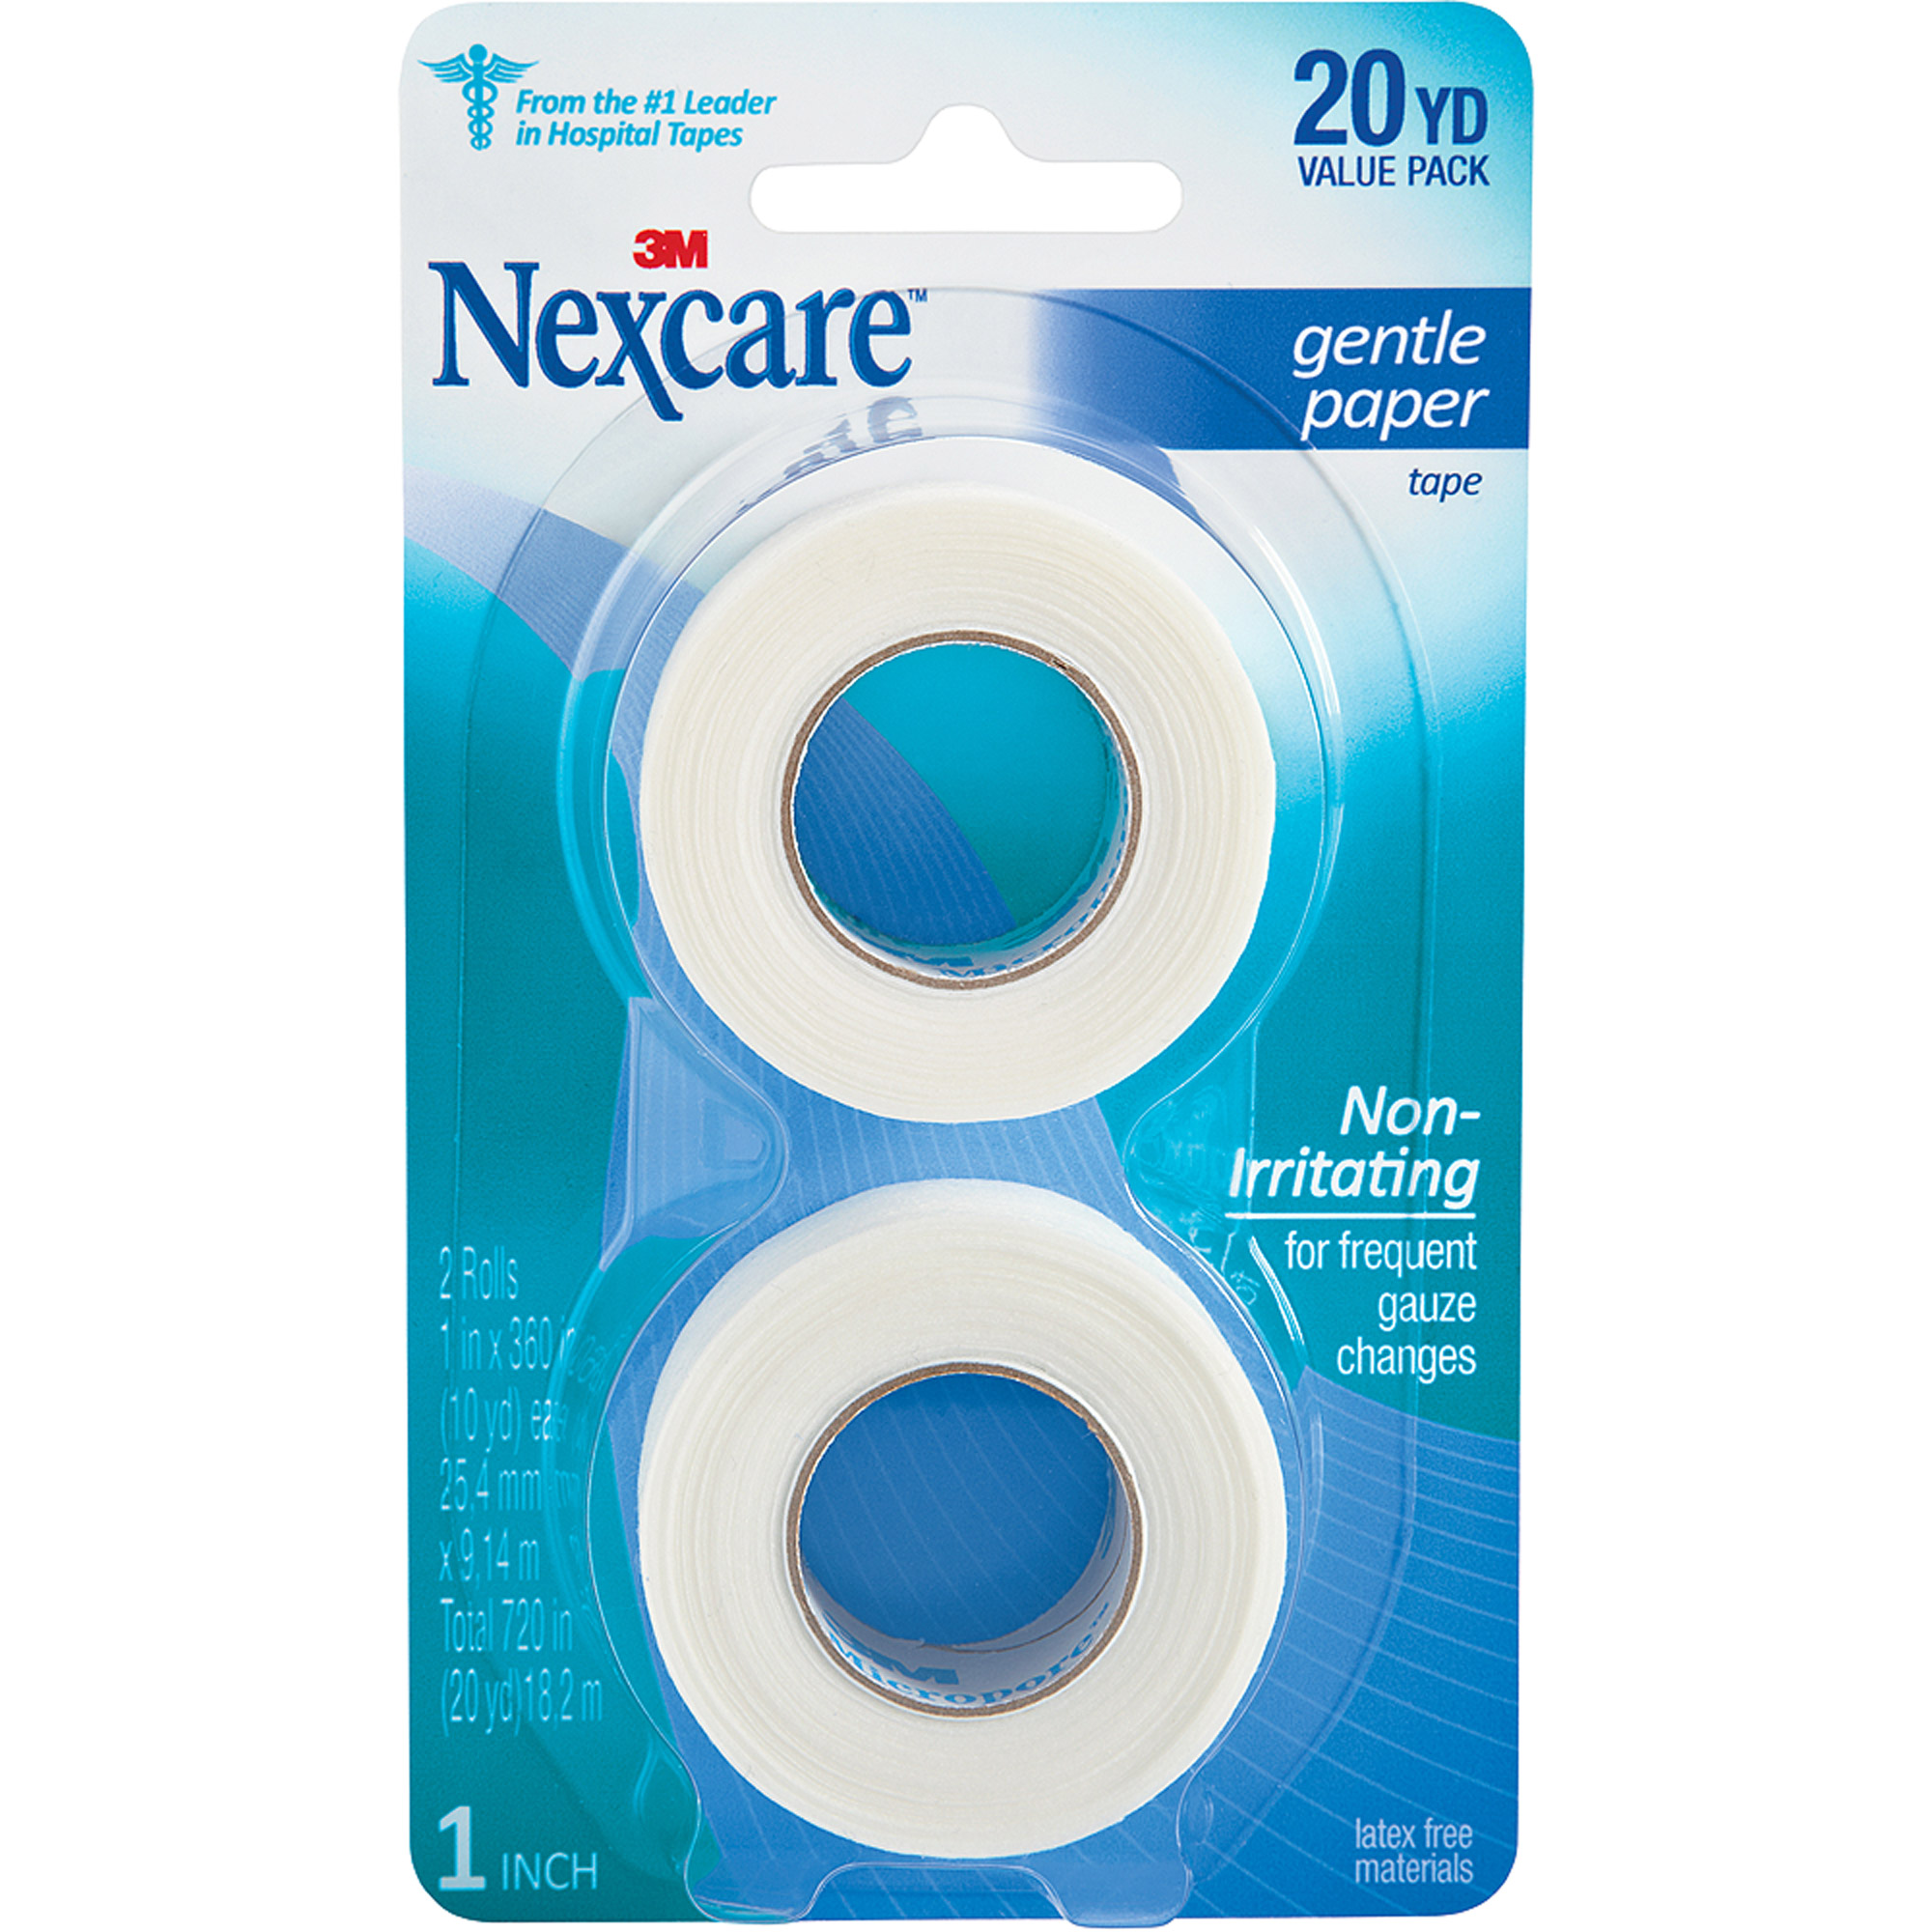 Nexcare Gentle Paper First Aid Tape, 1 in x 10 yds, 2 rolls